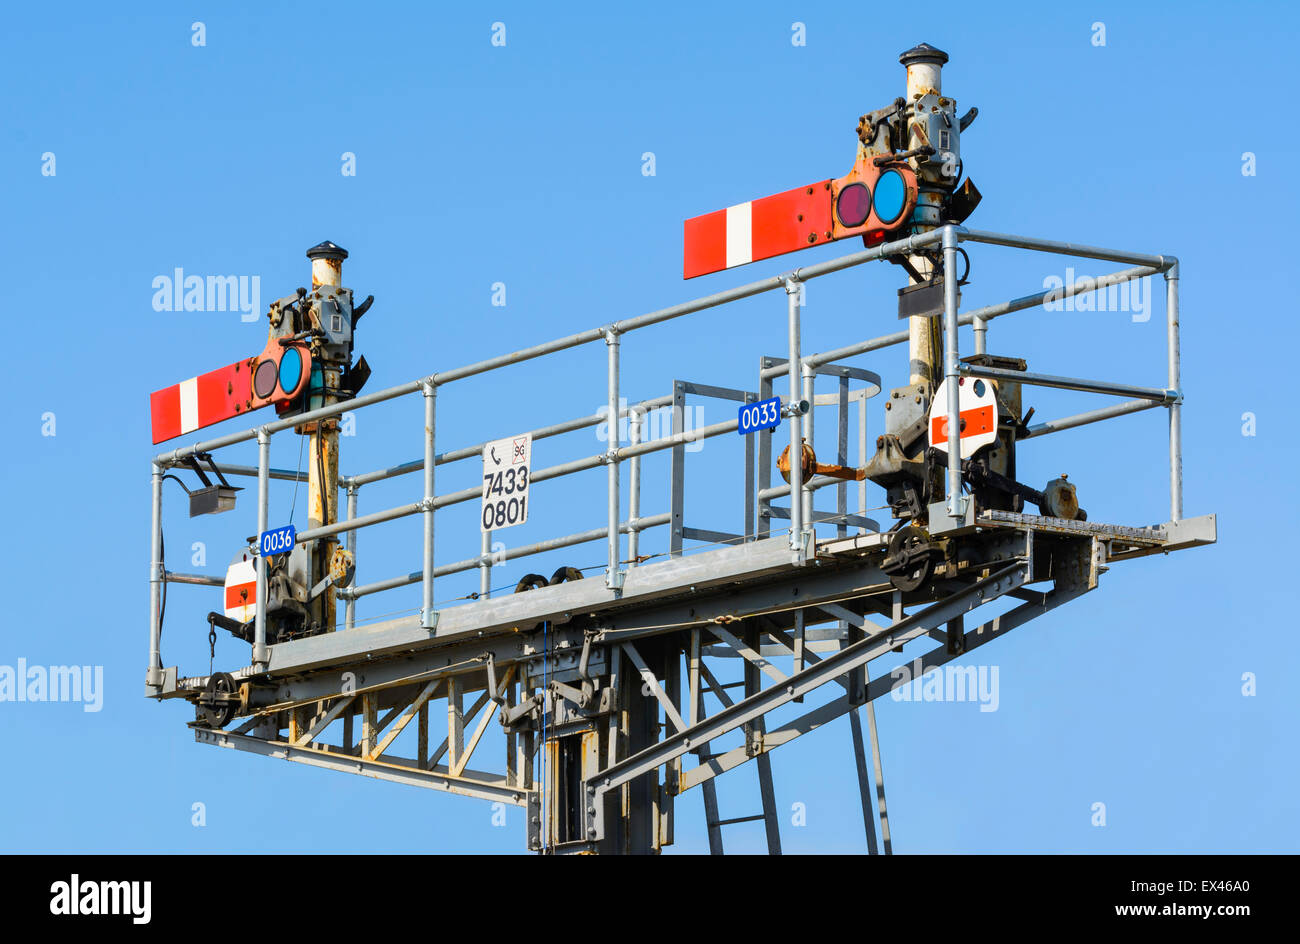 Old style mechanical semaphore stop signals on a British railway, both in the stop position, in England, UK. Stock Photo